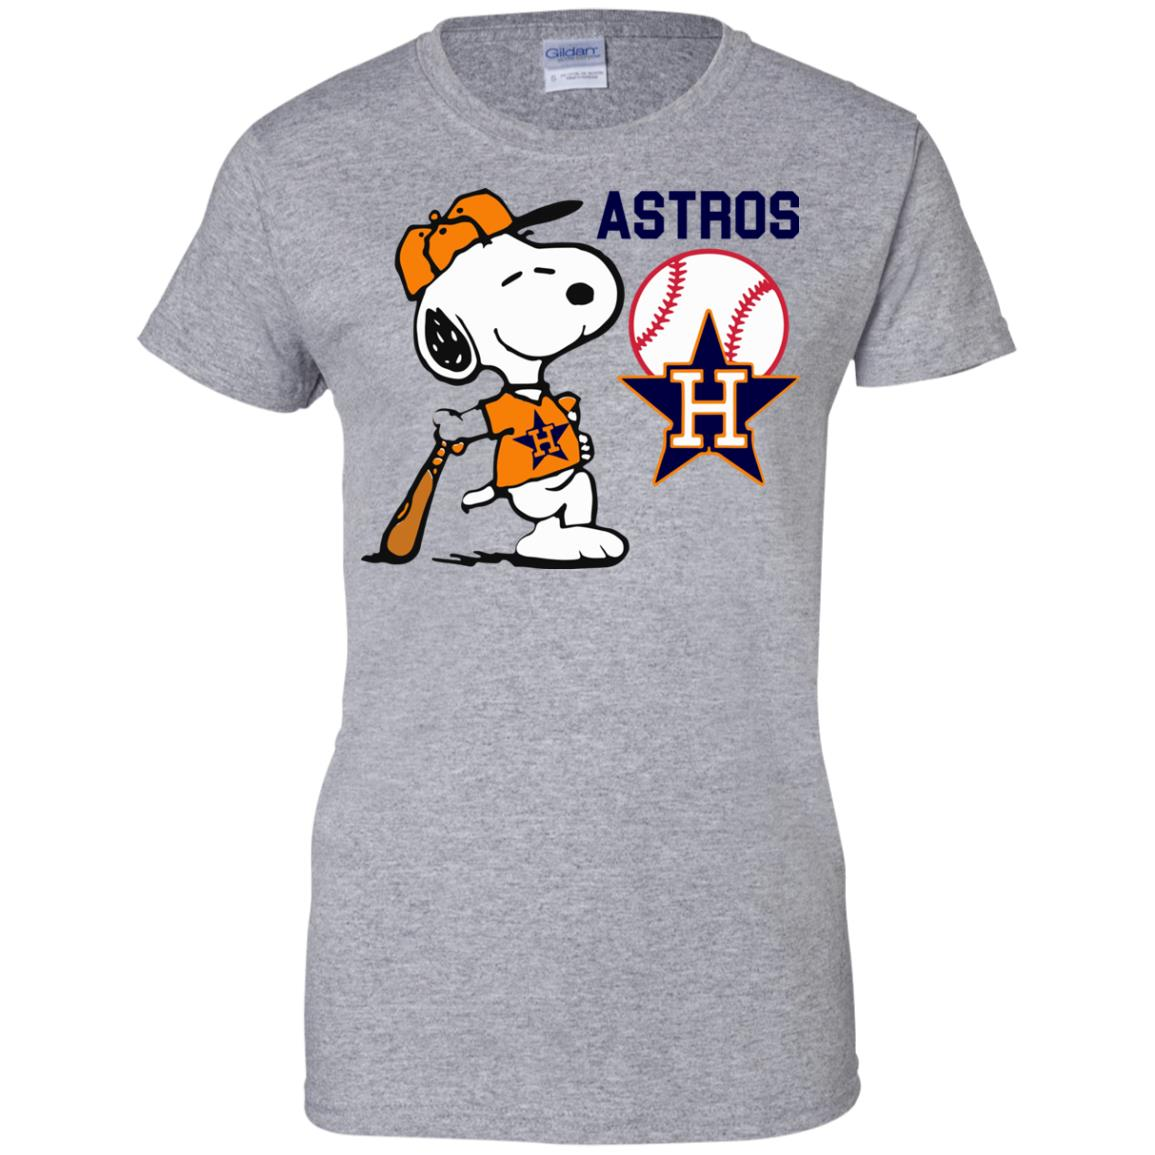 image 974 - Snoopy Houston Astros Shirt, Sweater, Hoodie